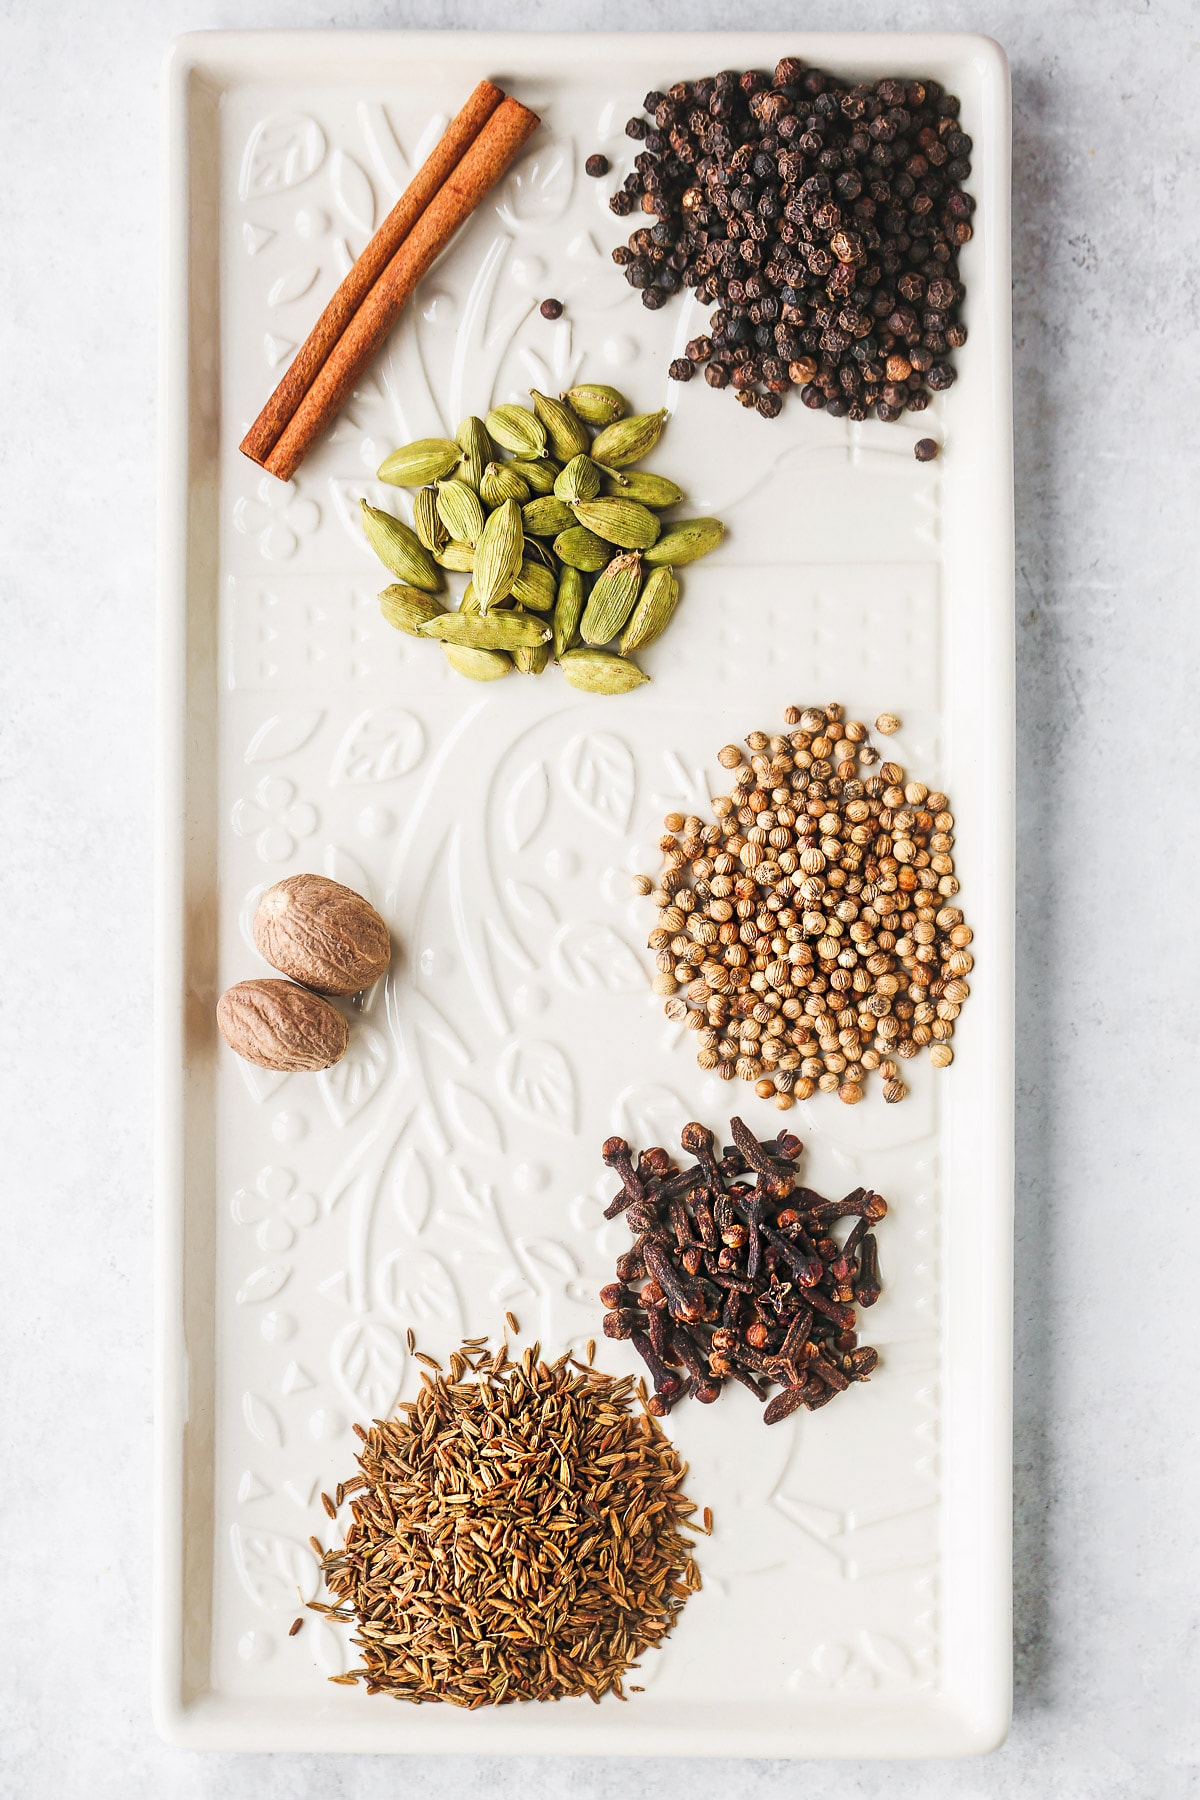 Baharat Spice Blend ingredients